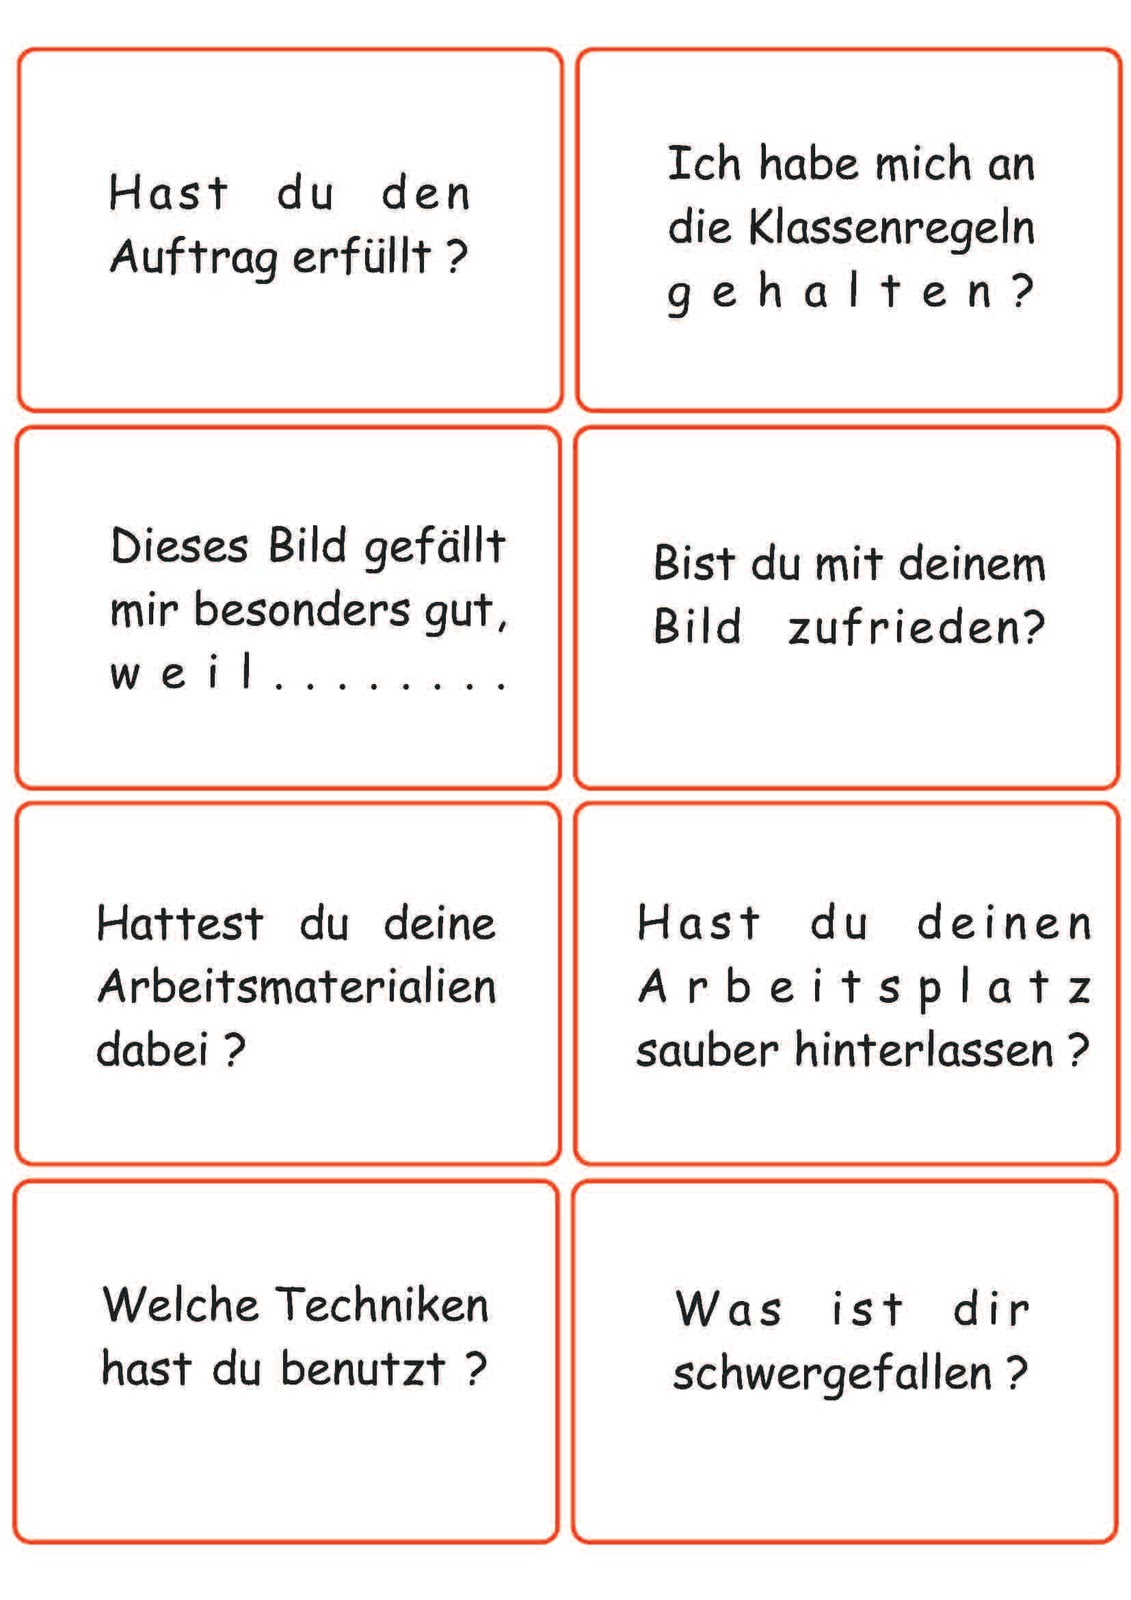 Dating app bilder bewerten — pic 5